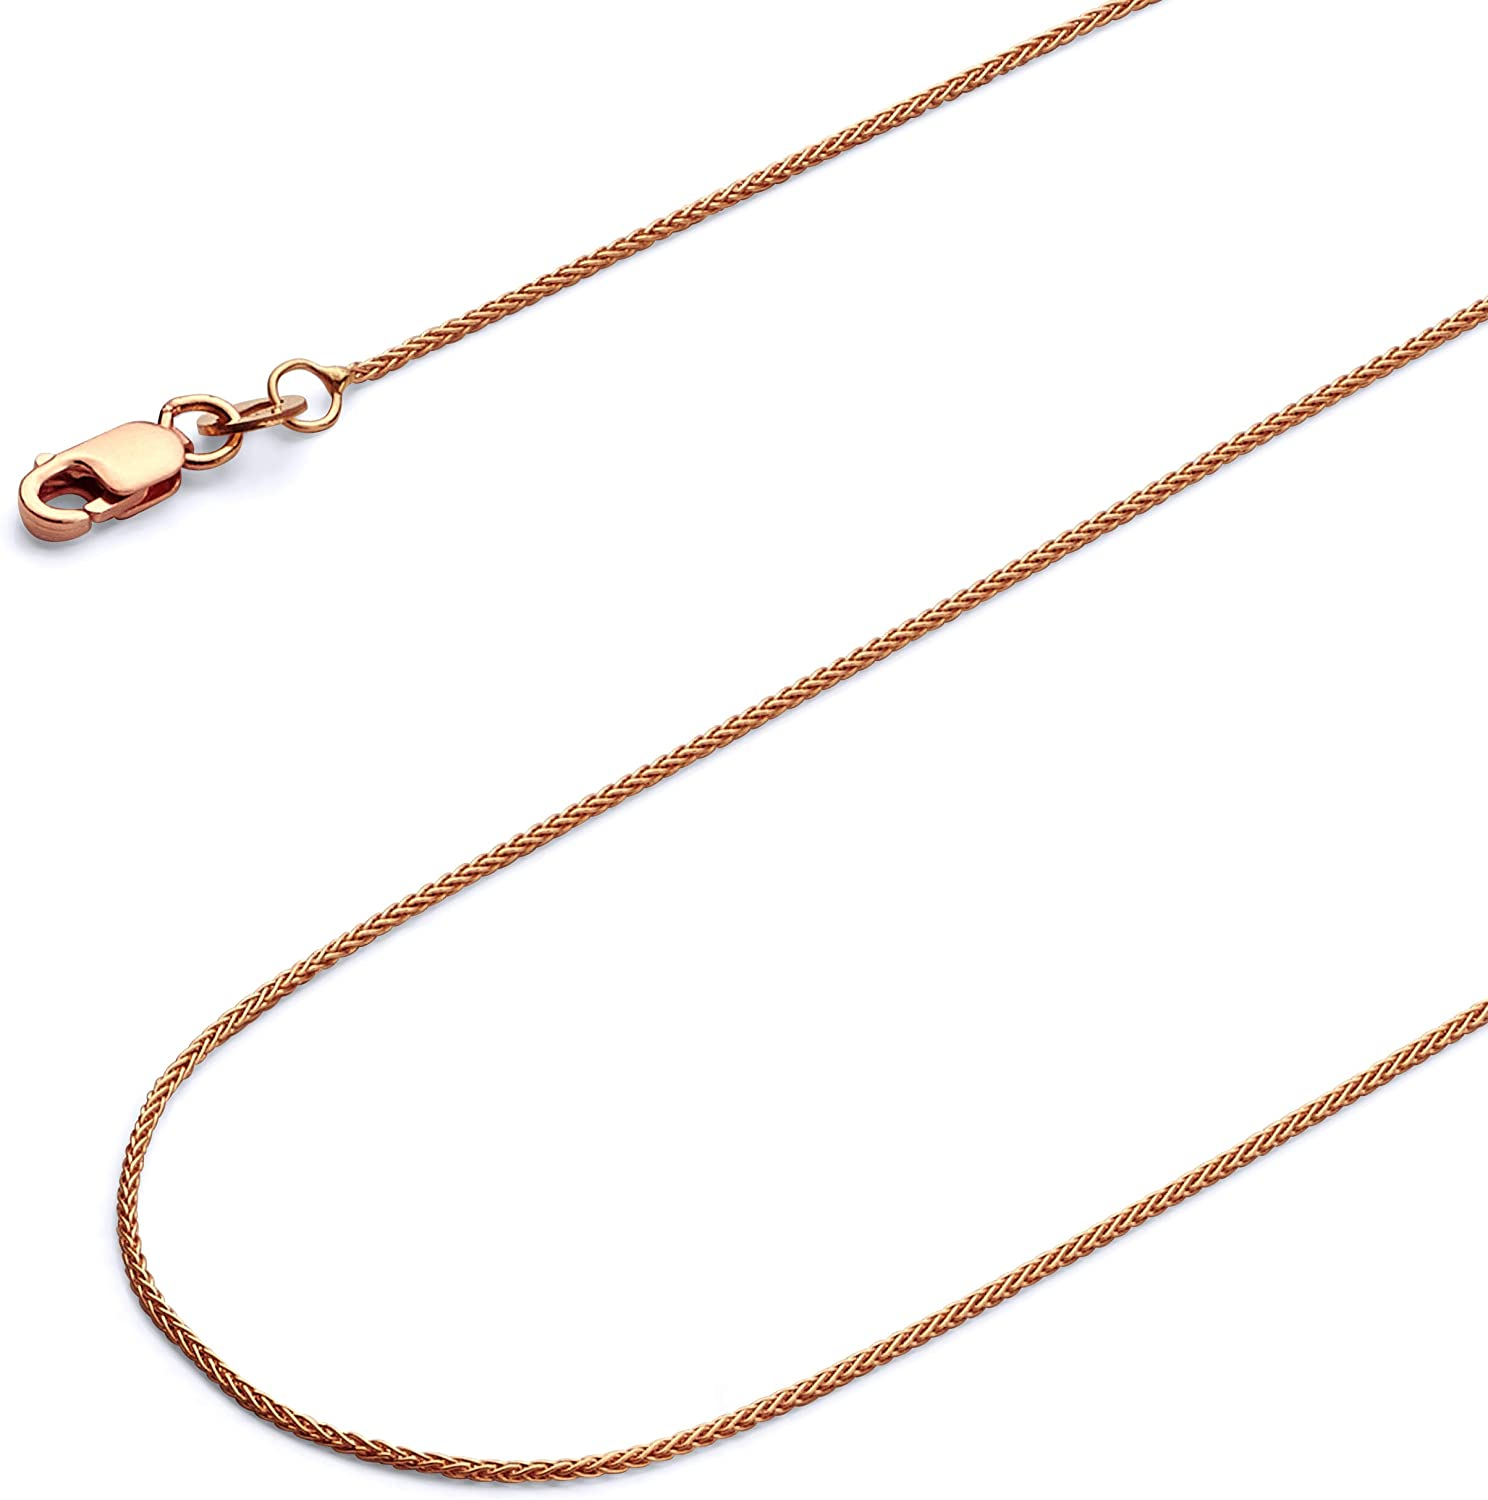 14k REAL Yellow OR White OR Rose/Pink Gold Solid 1mm Braided Wheat Chain Necklace with Lobster Claw Clasp